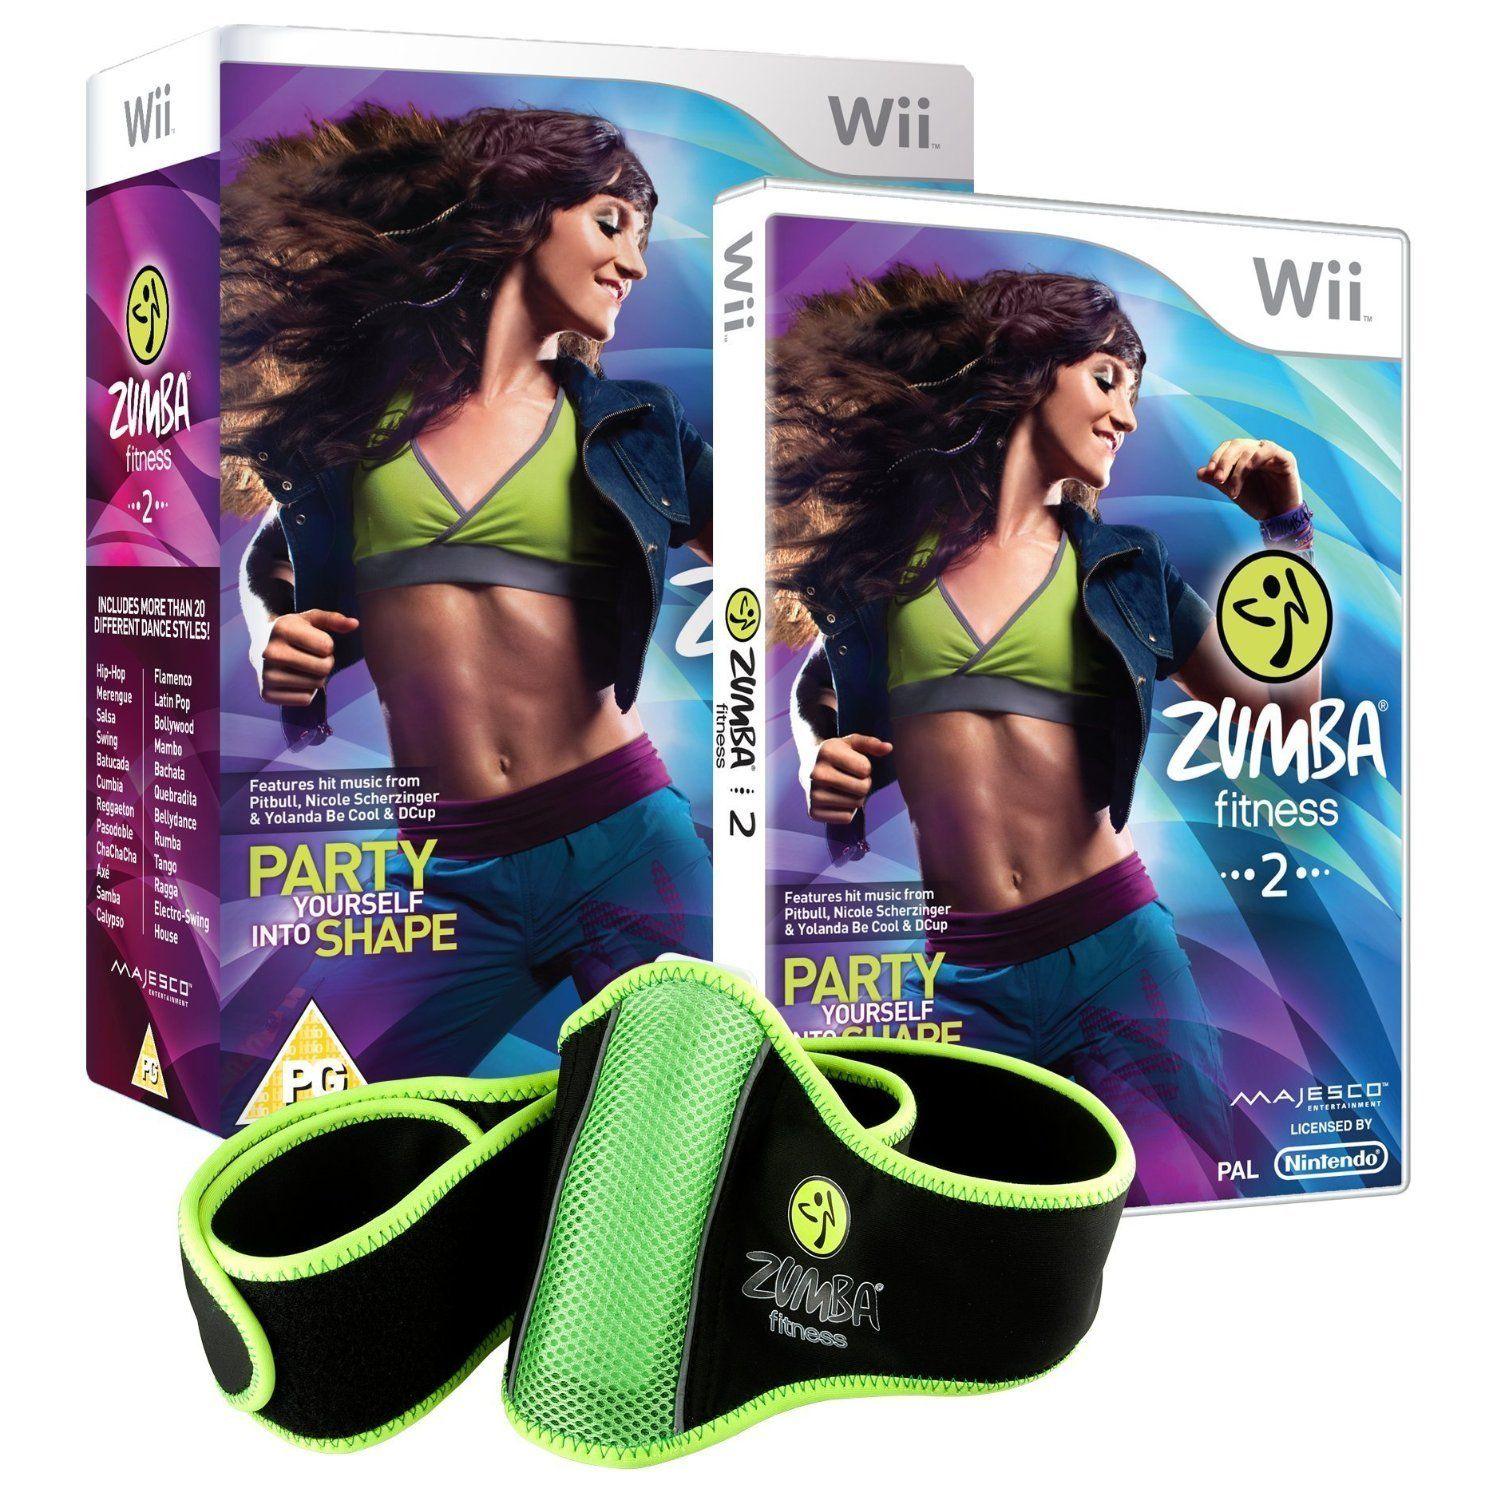 Zumba for Wii - great alternative for a gym course http://amzn.to/1lFINKF